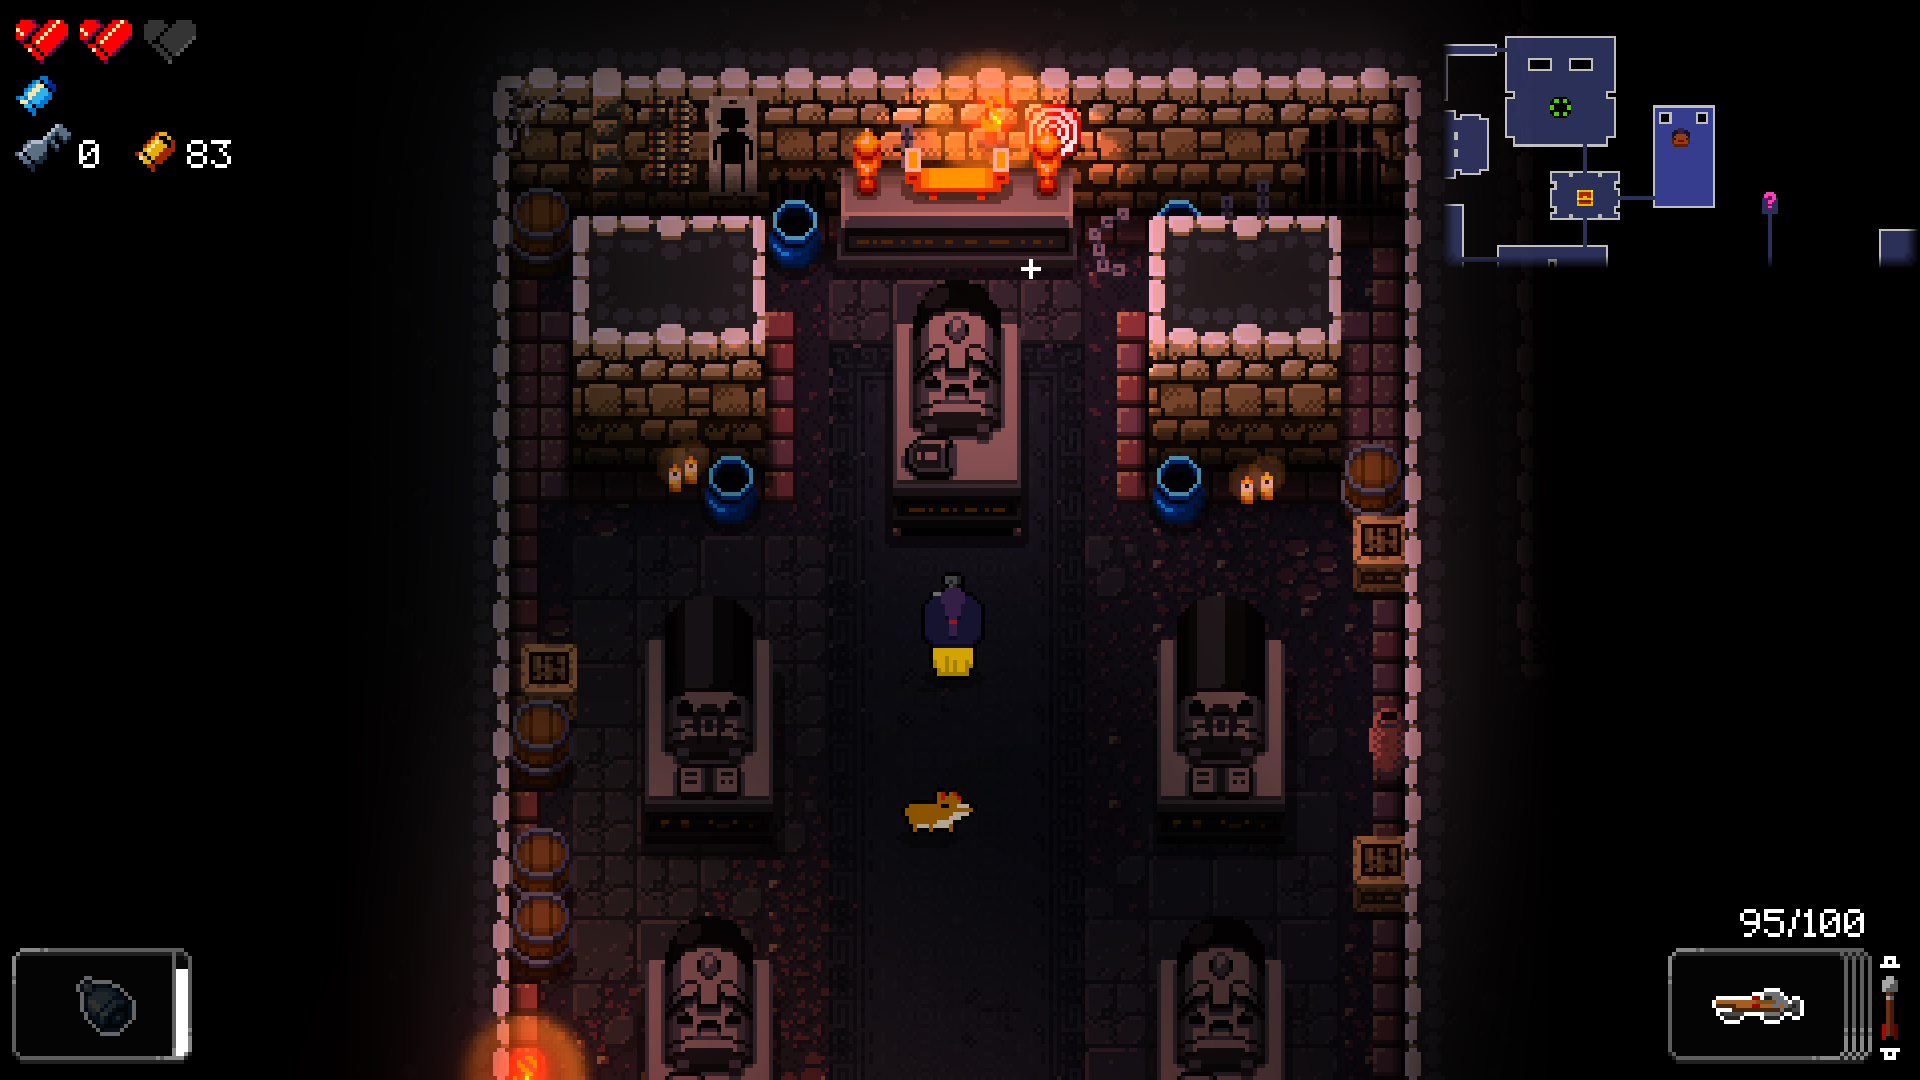 Steam Community Guide Easy Secret Level On The First And Second Floor And Other Stuff Spoilers